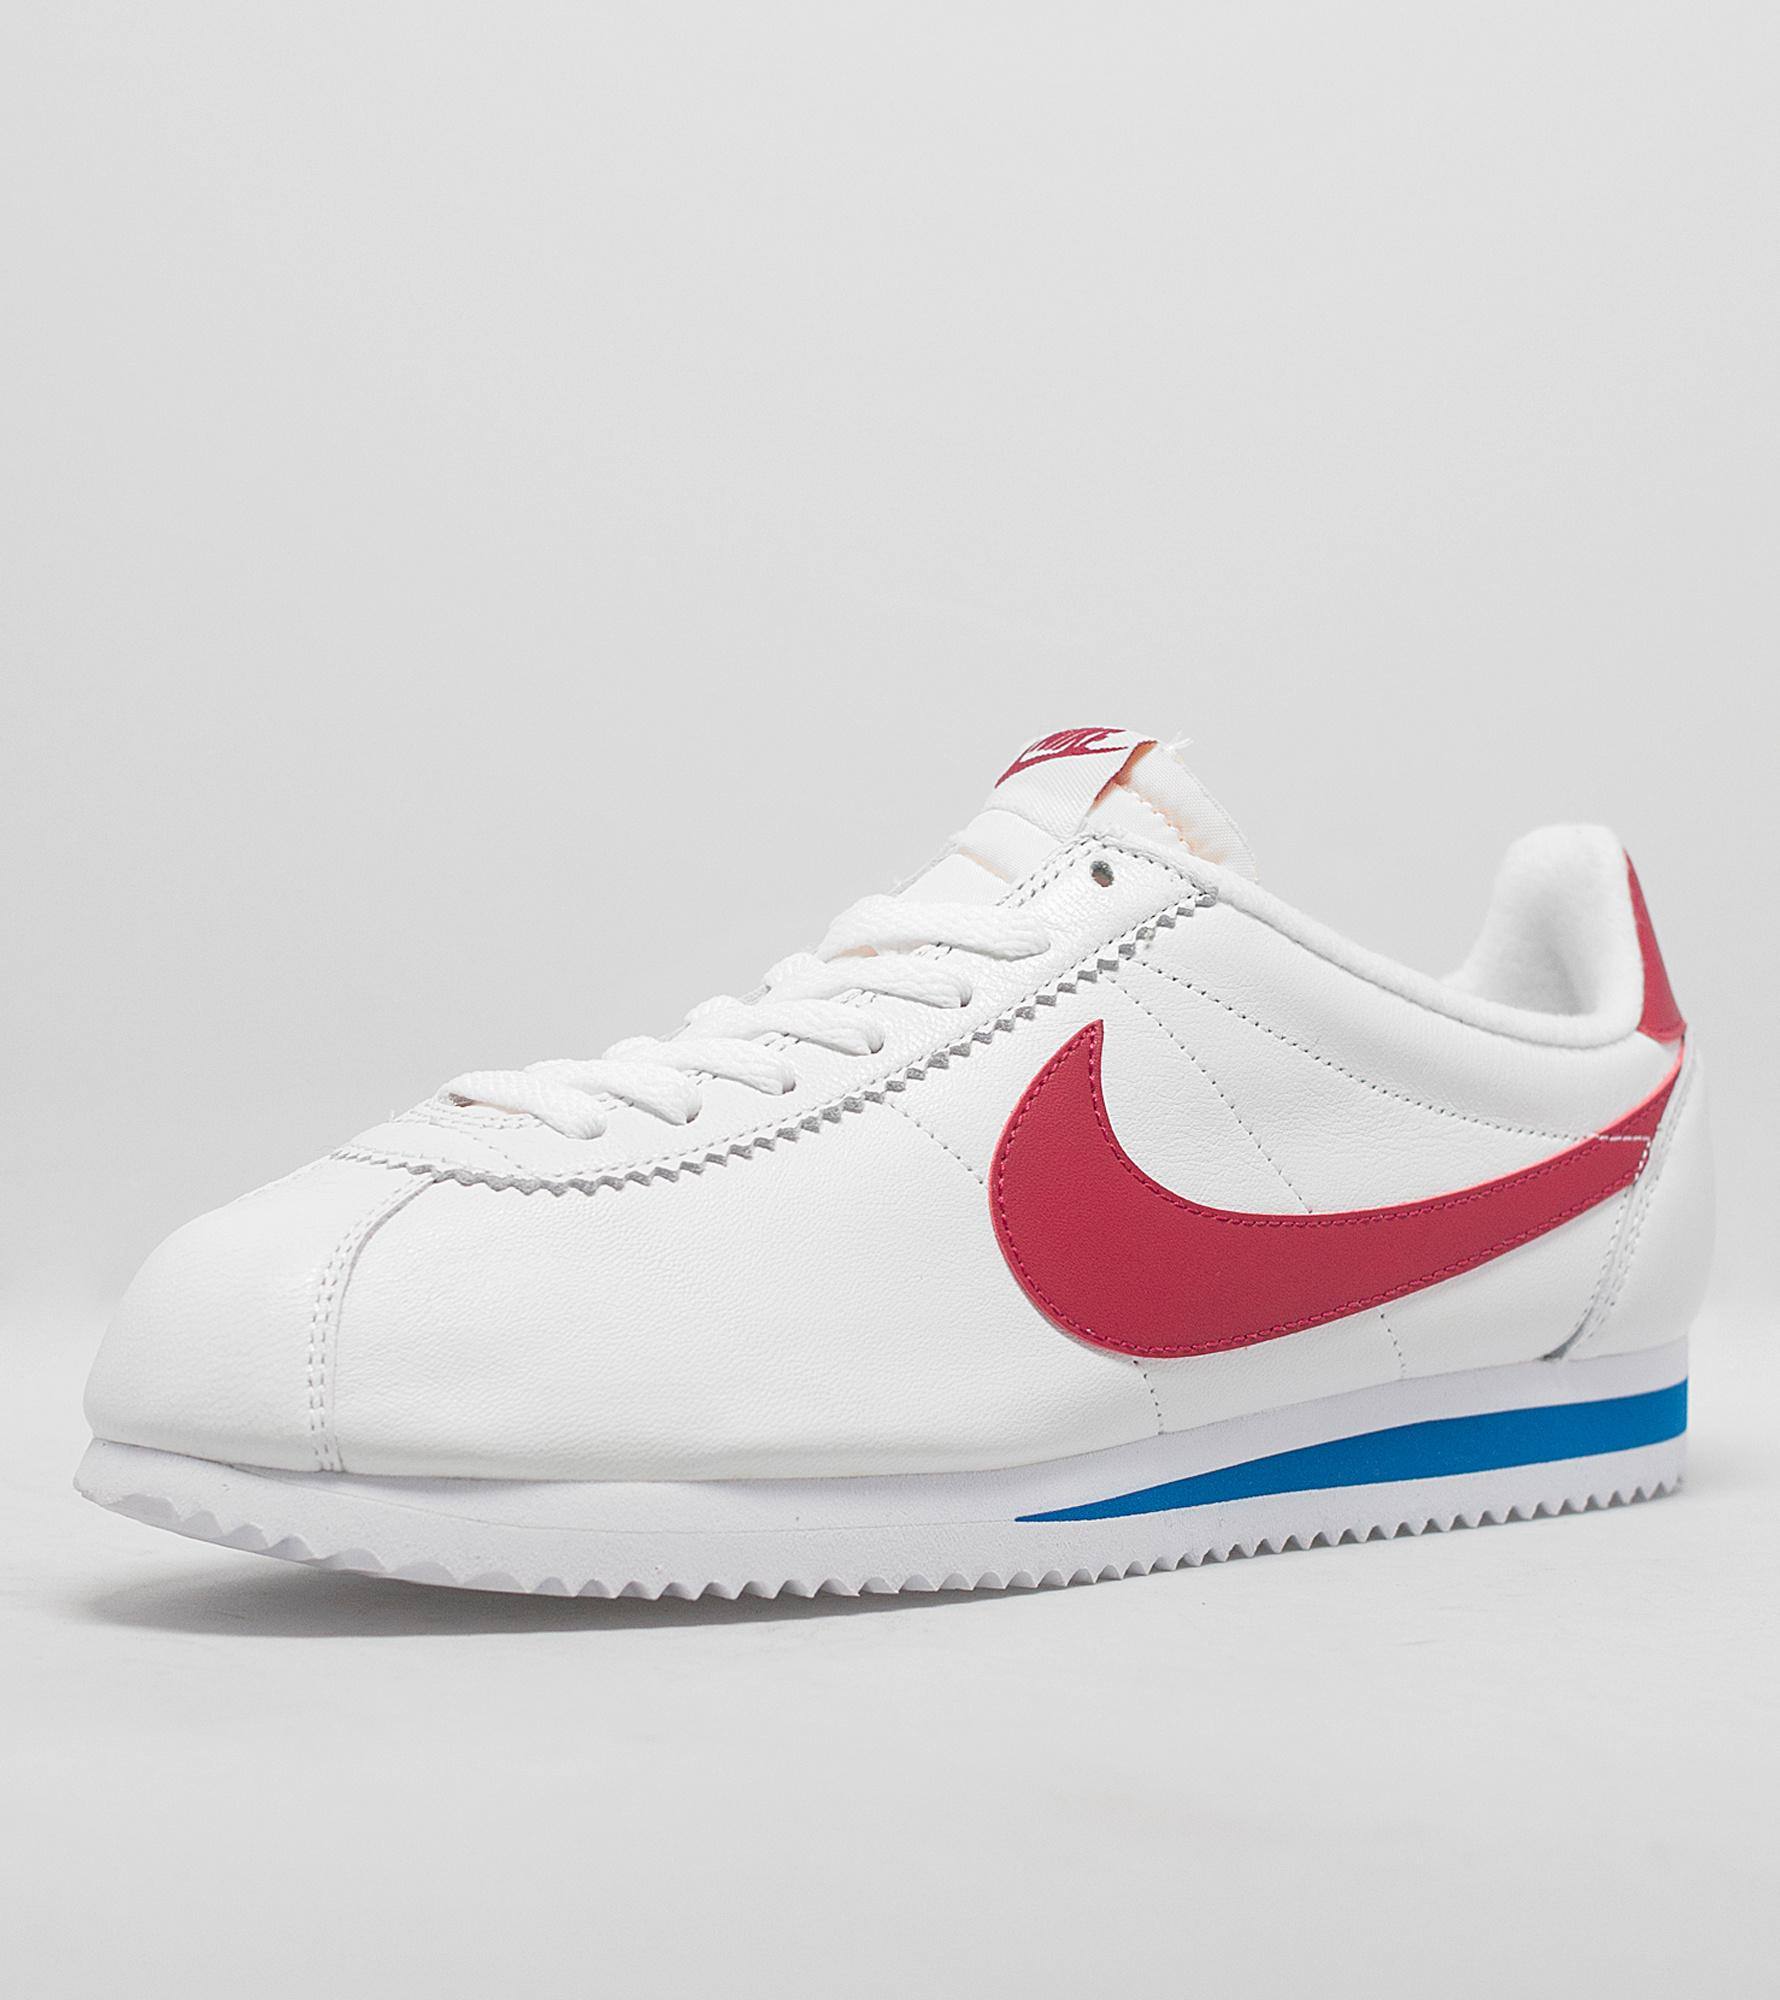 reputable site 3d6a9 aed5a nike cortez junior